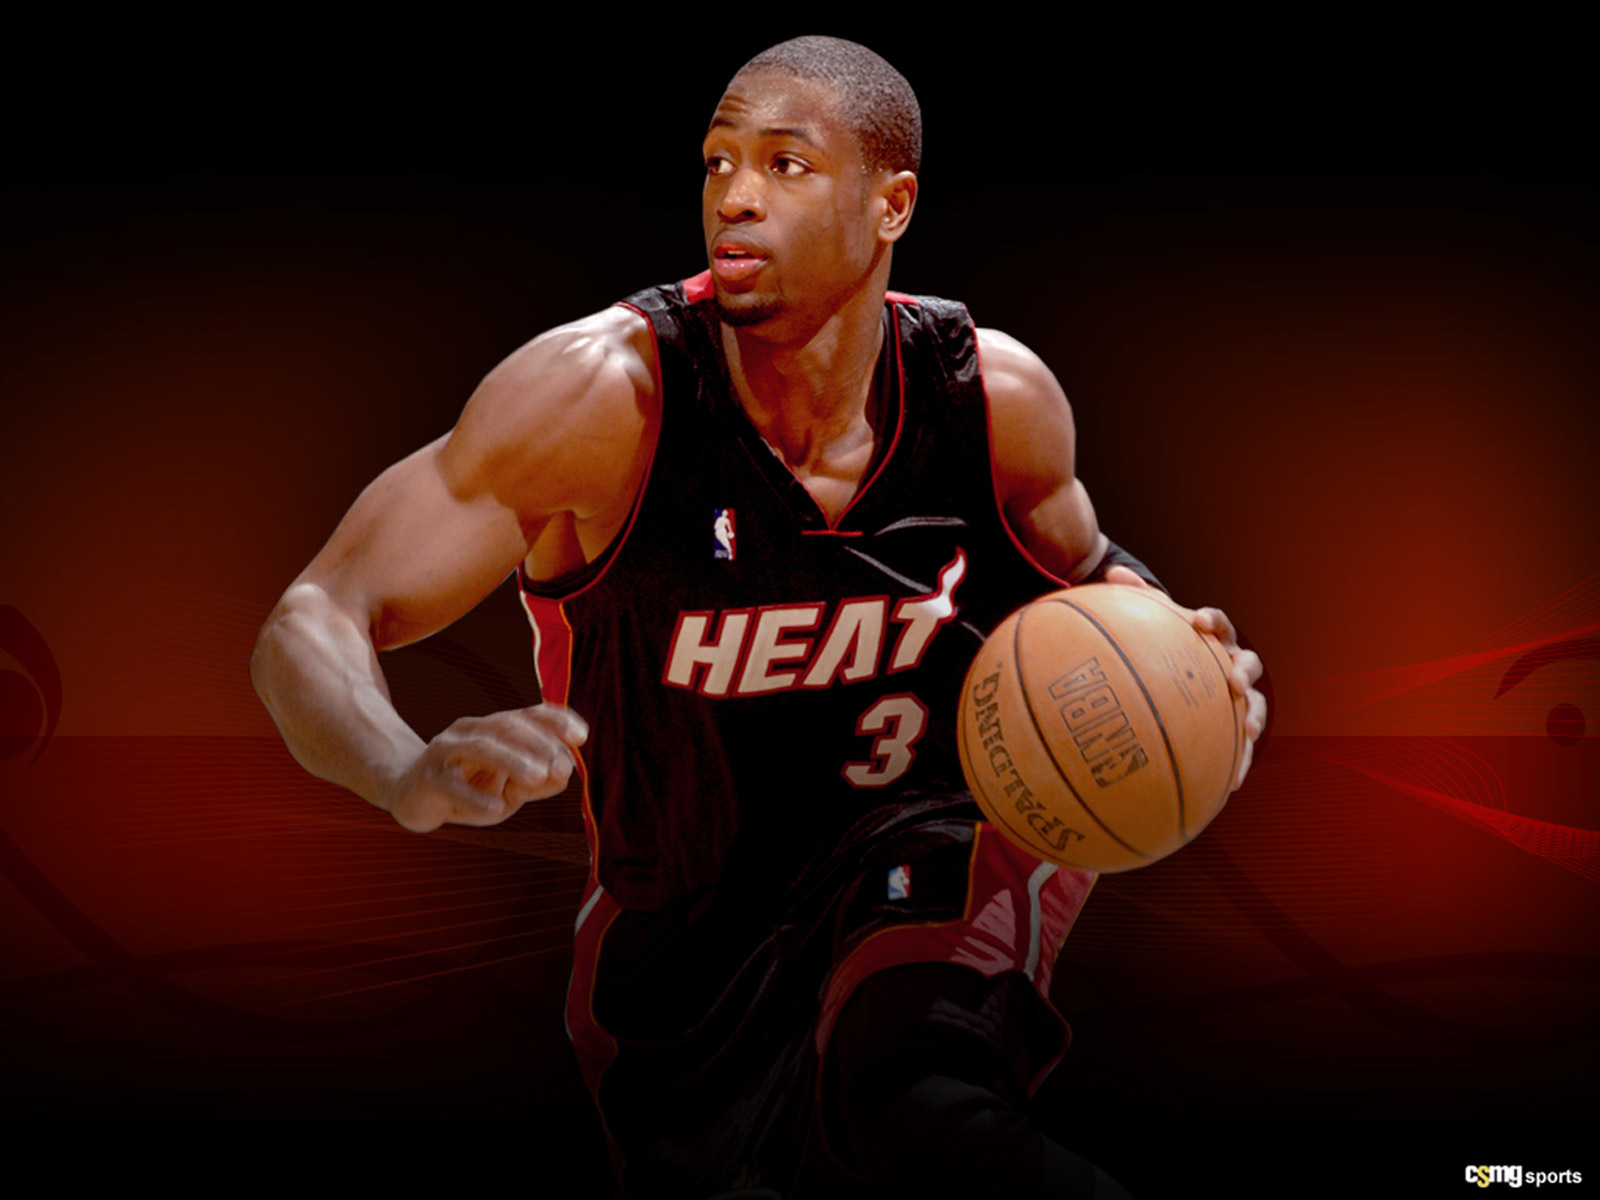 Wallpapers DWYANE WADE NBA TSEBA